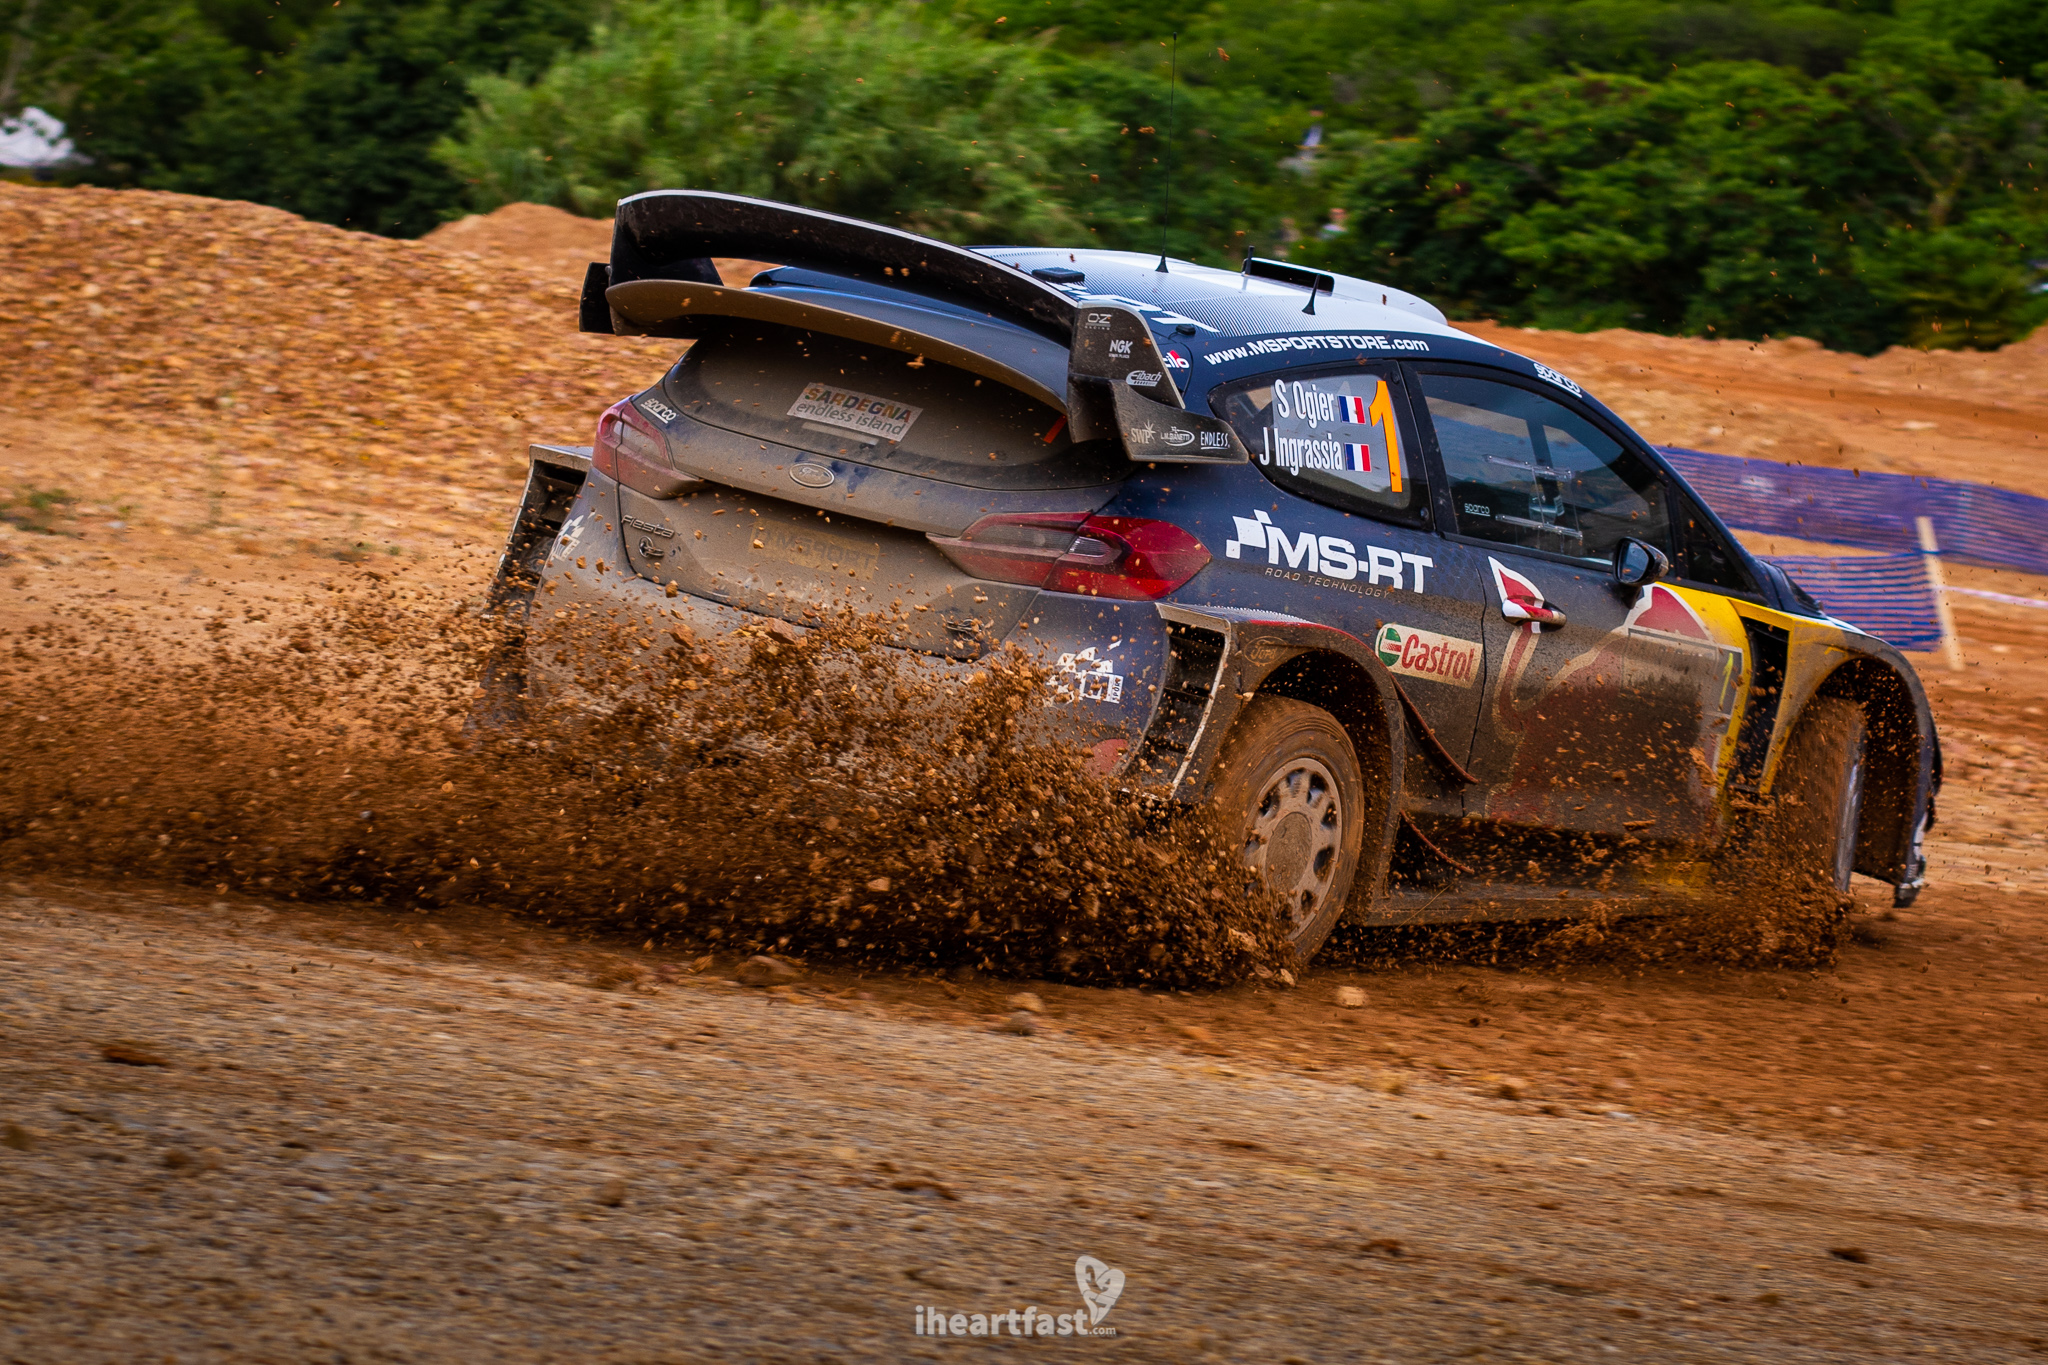 Sebastien Ogier kicking up a bunch of mud